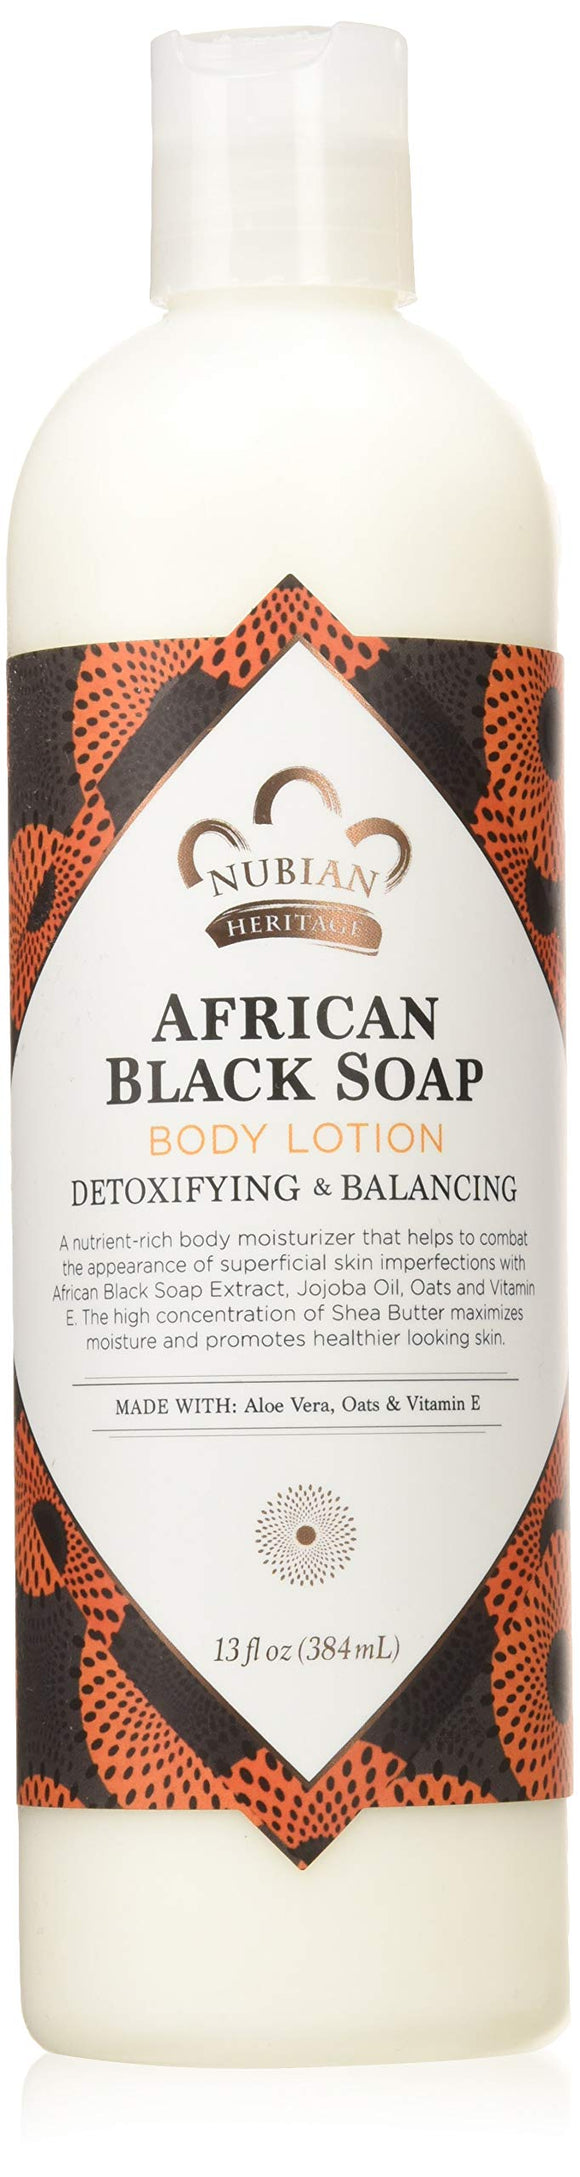 [product_id] - Beauty, Beauty & Personal Care, Black, Body, Lotions, Moisturizers, Nubian Heritage, Skin Care, Skin Care Products, virus buster - Wellica